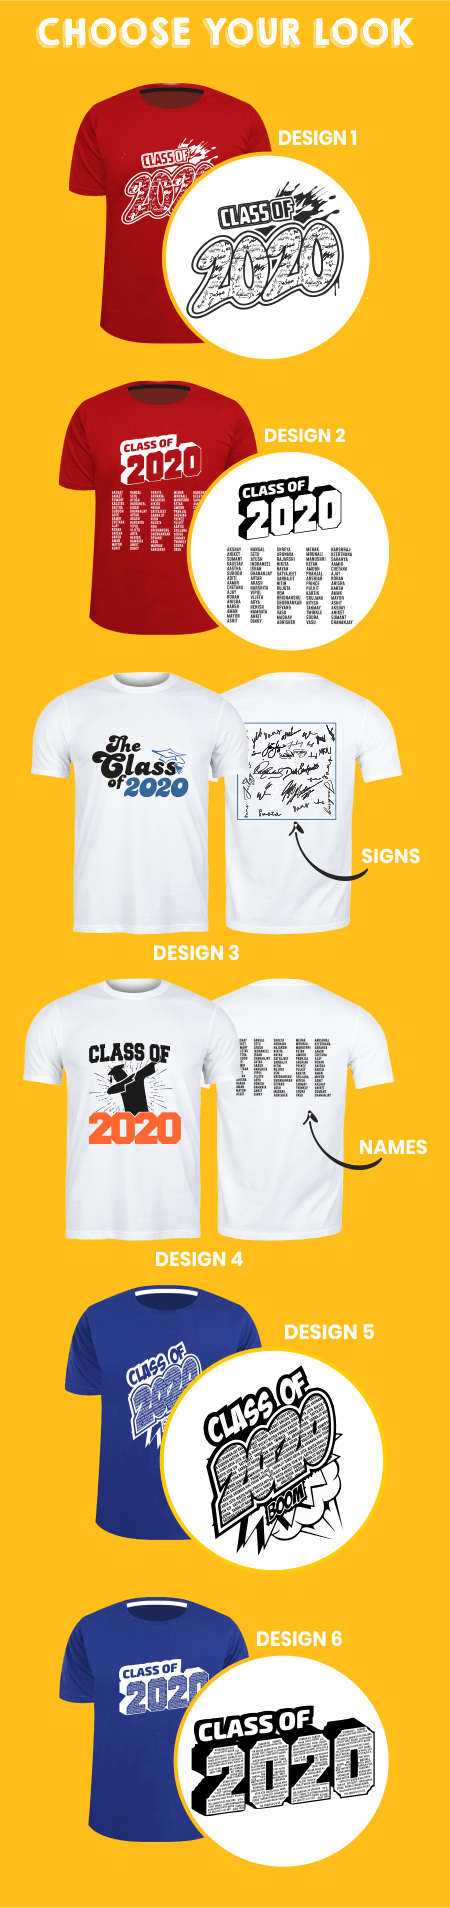 Mycampusstore Last Day T-Shirts for School students and college students